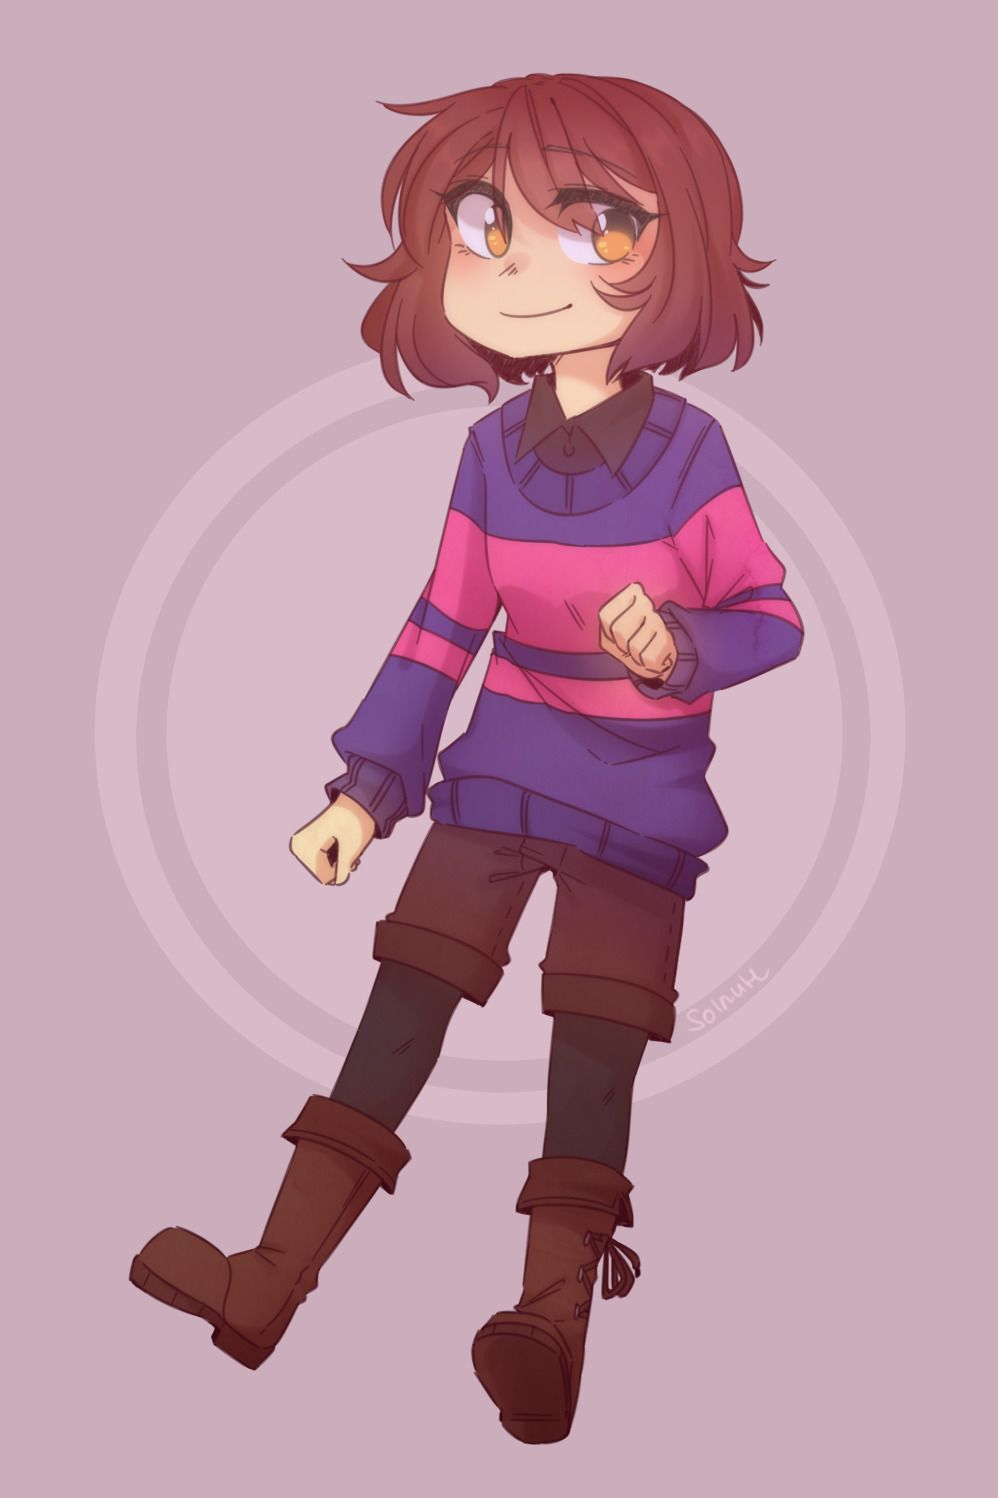 Friskkkkkkk Undertale Cute Undertale Anime Undertale